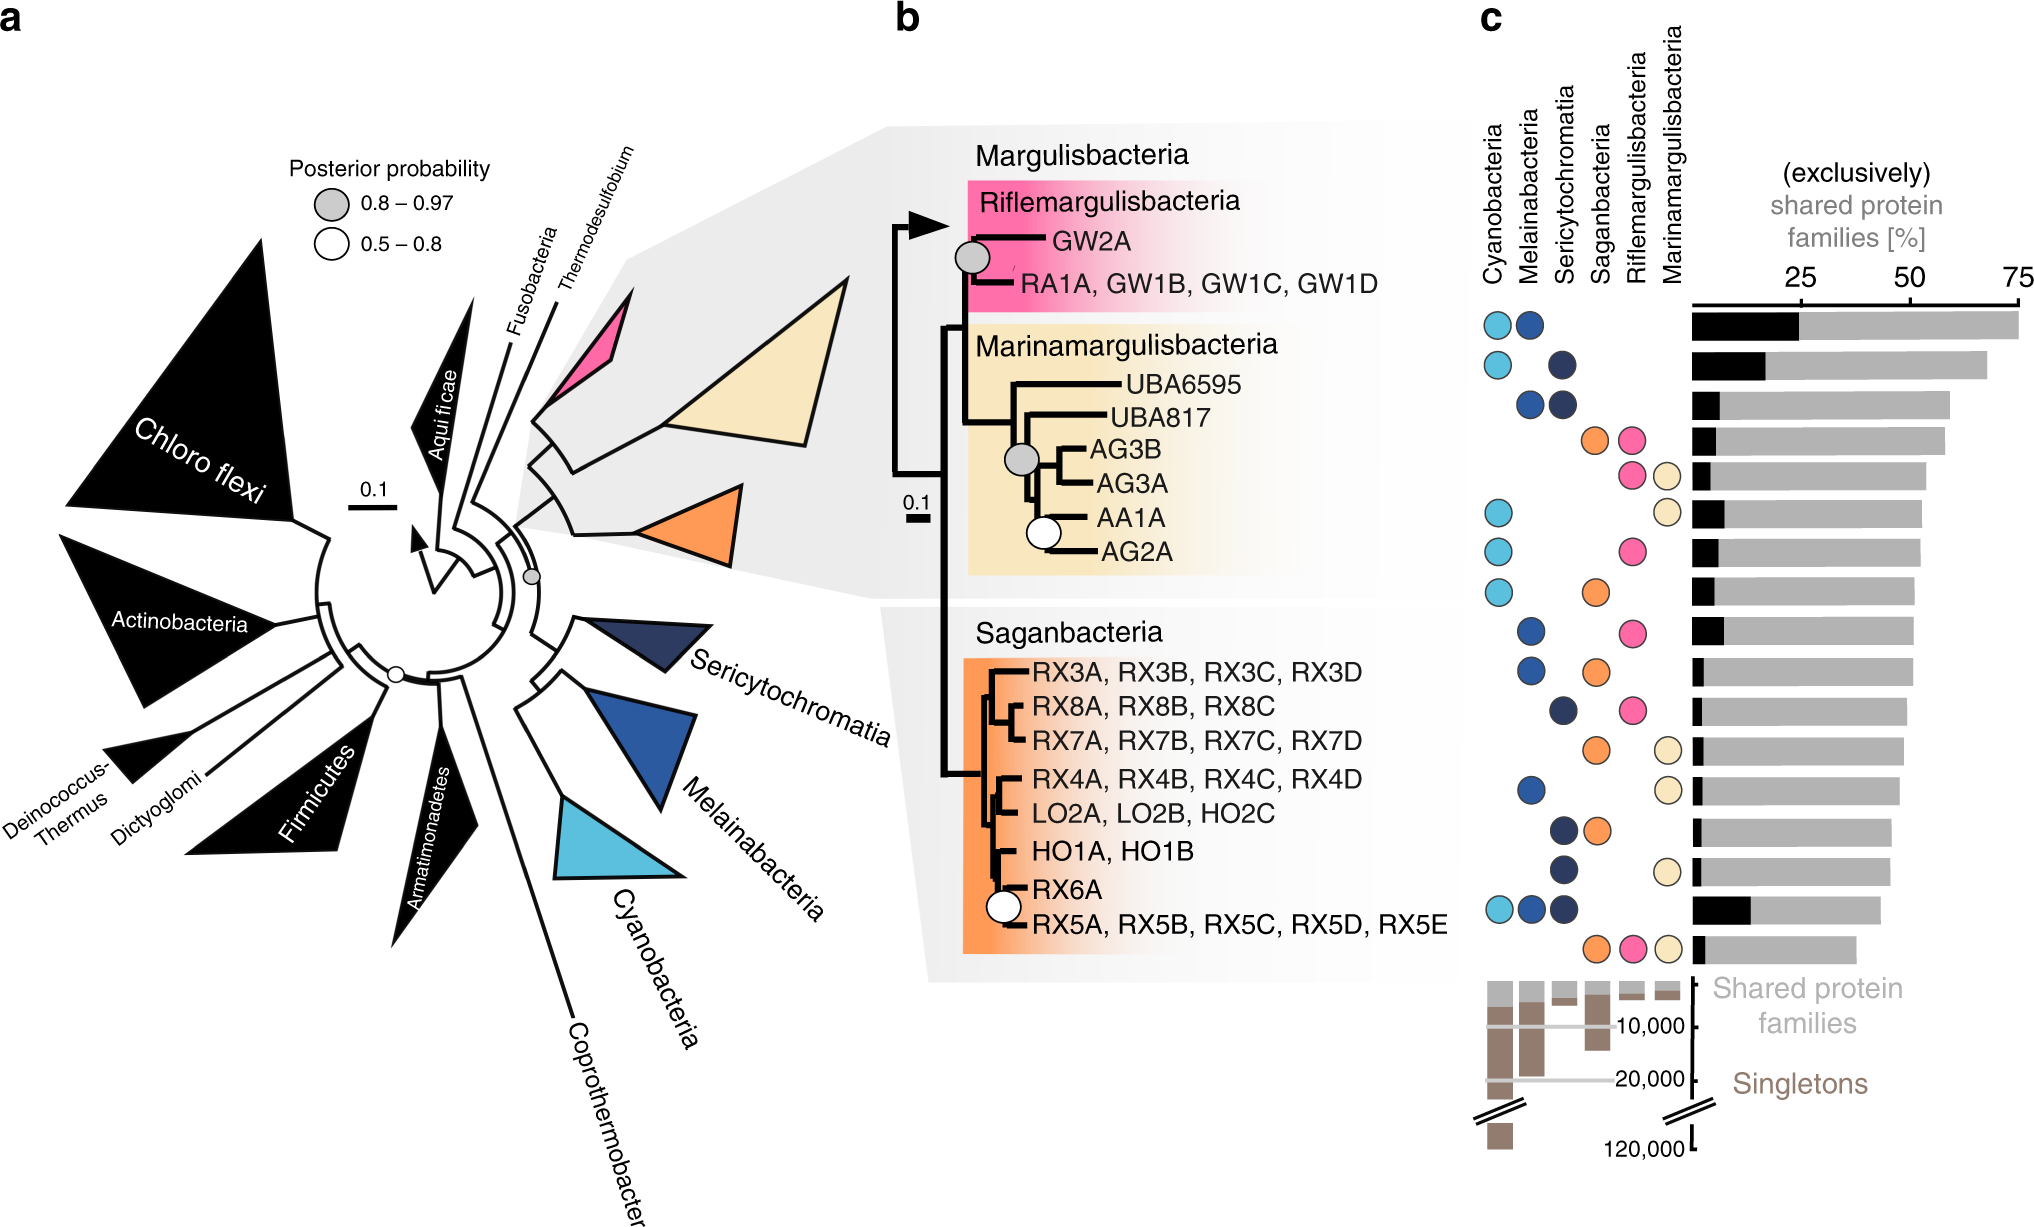 Hydrogen-based metabolism as an ancestral trait in lineages sibling